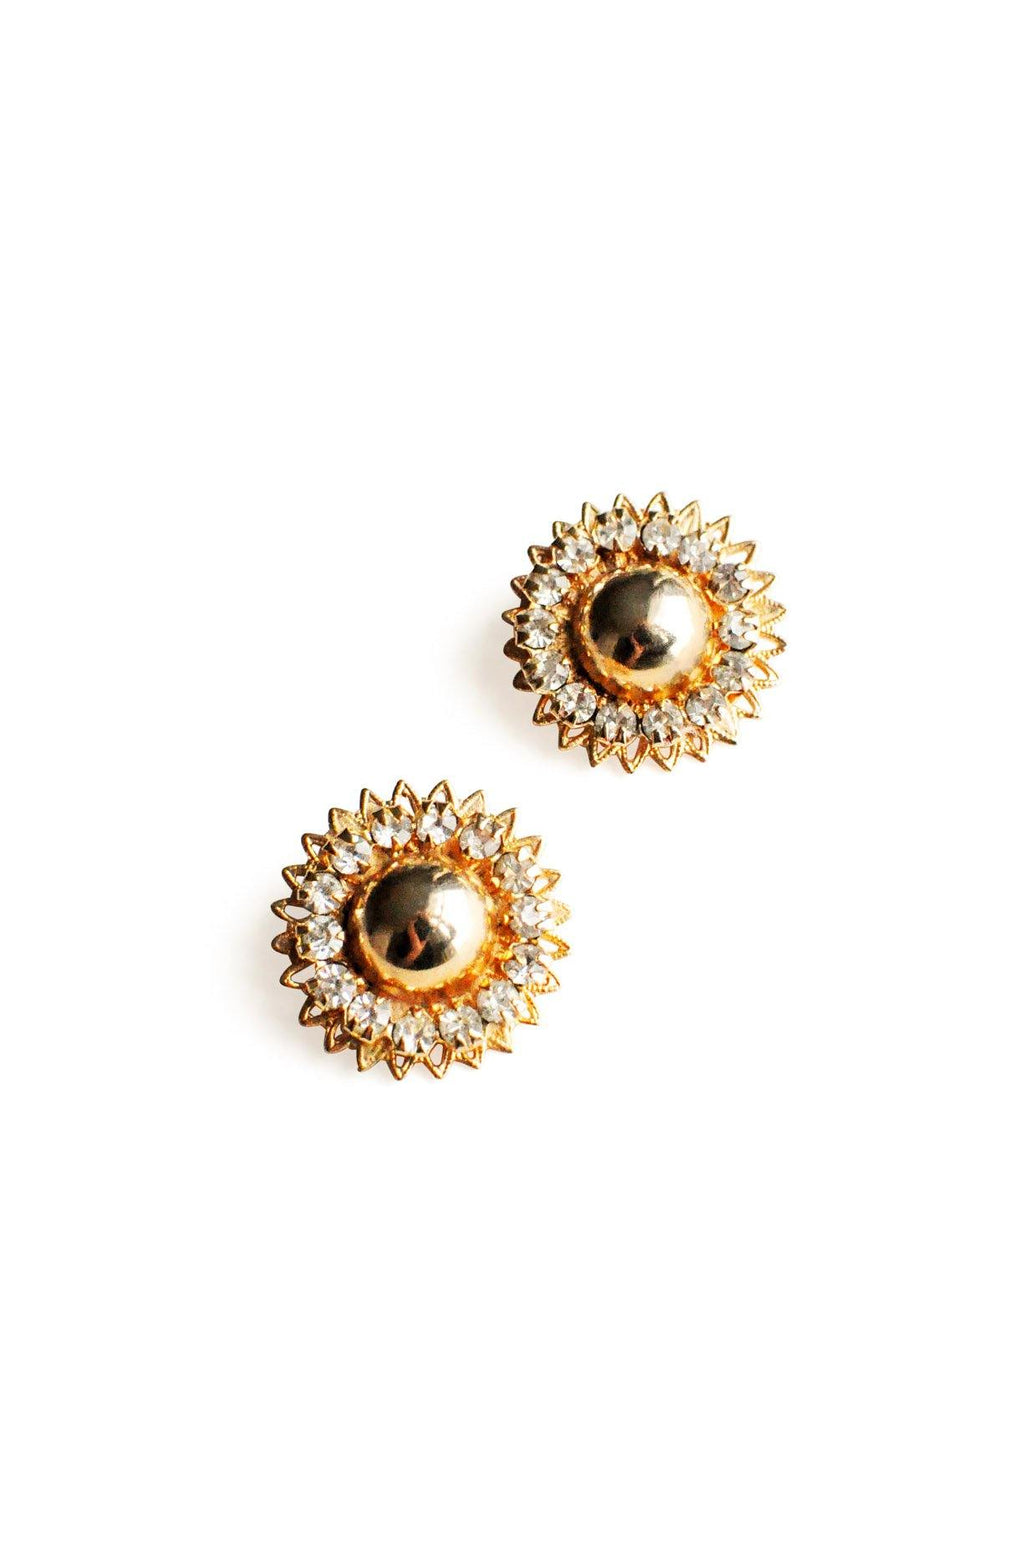 Gold and Rhinestone Clip-on Earrings